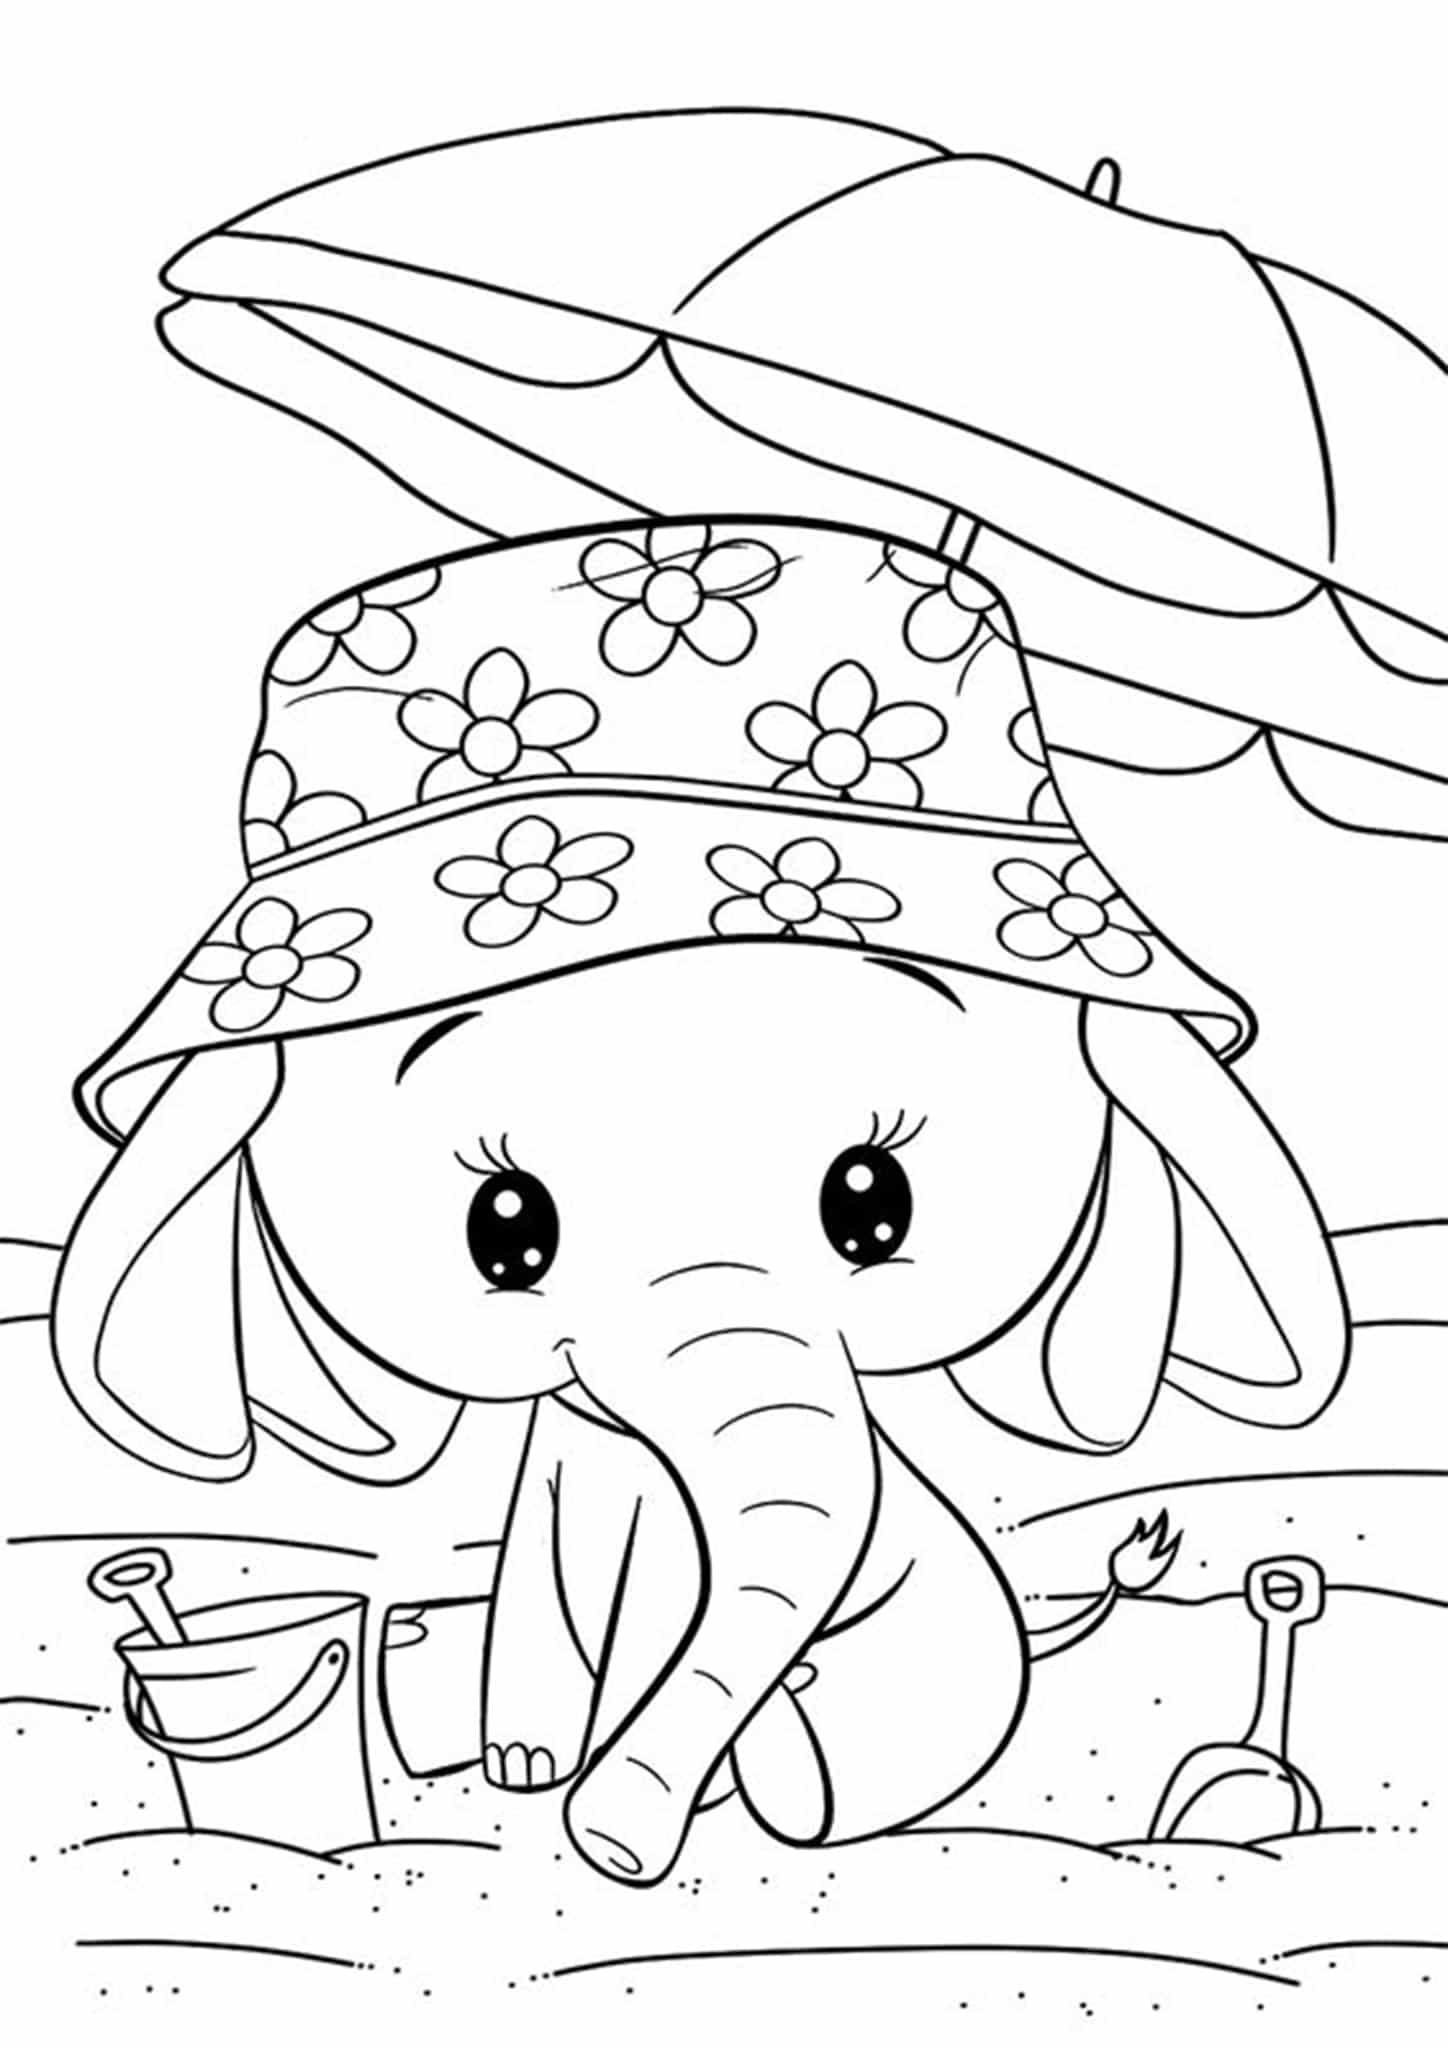 coloring book elephant images coloring book for children elephants stock illustration book elephant images coloring